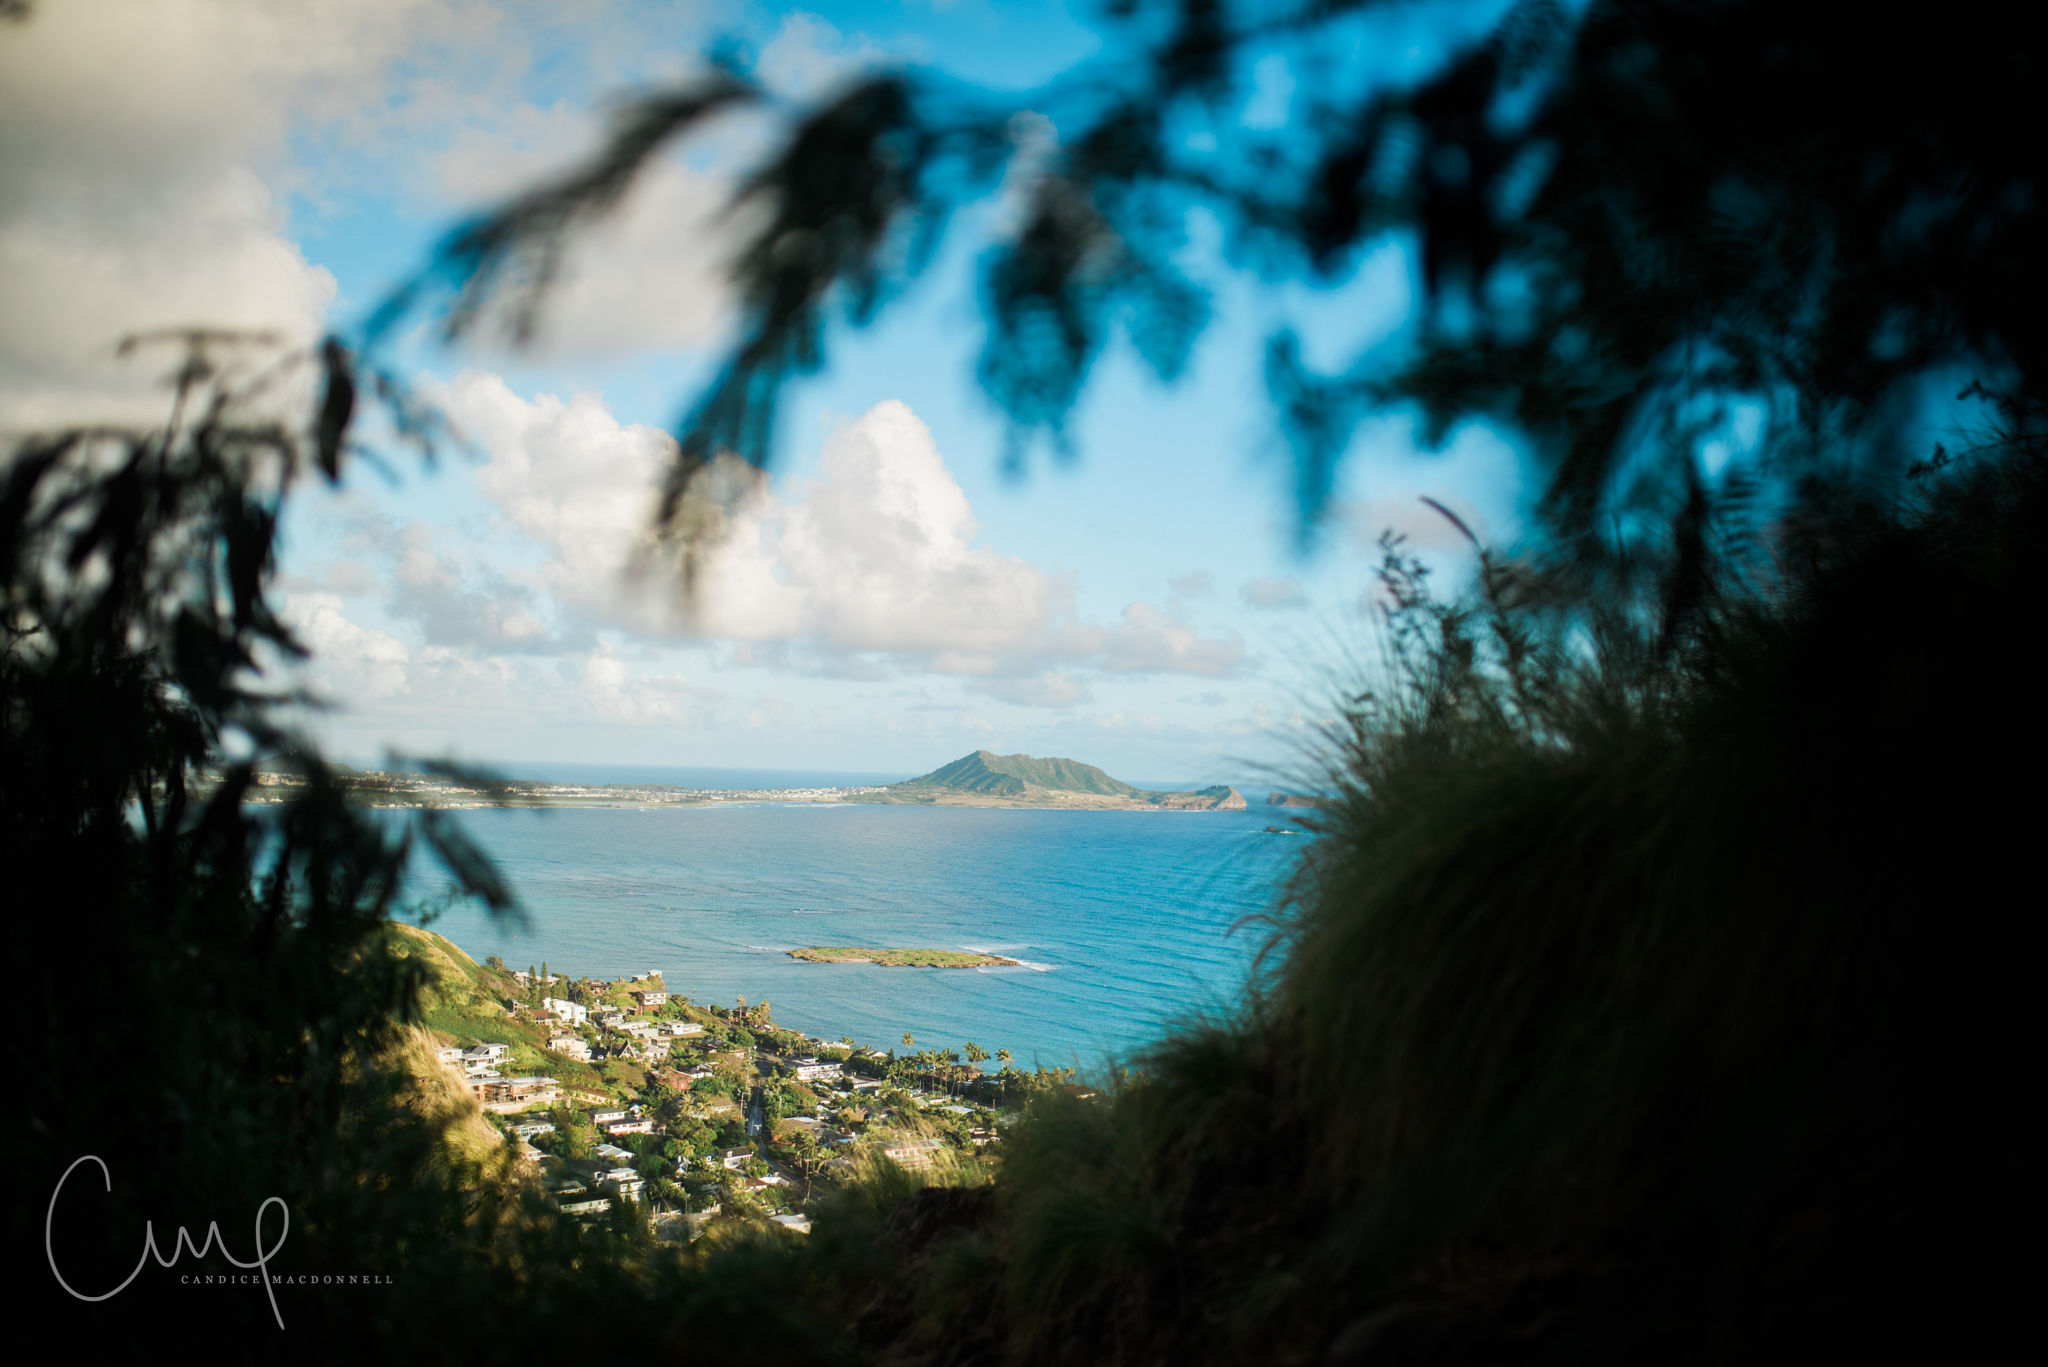 view of lanikai beach and islands from first pillbox